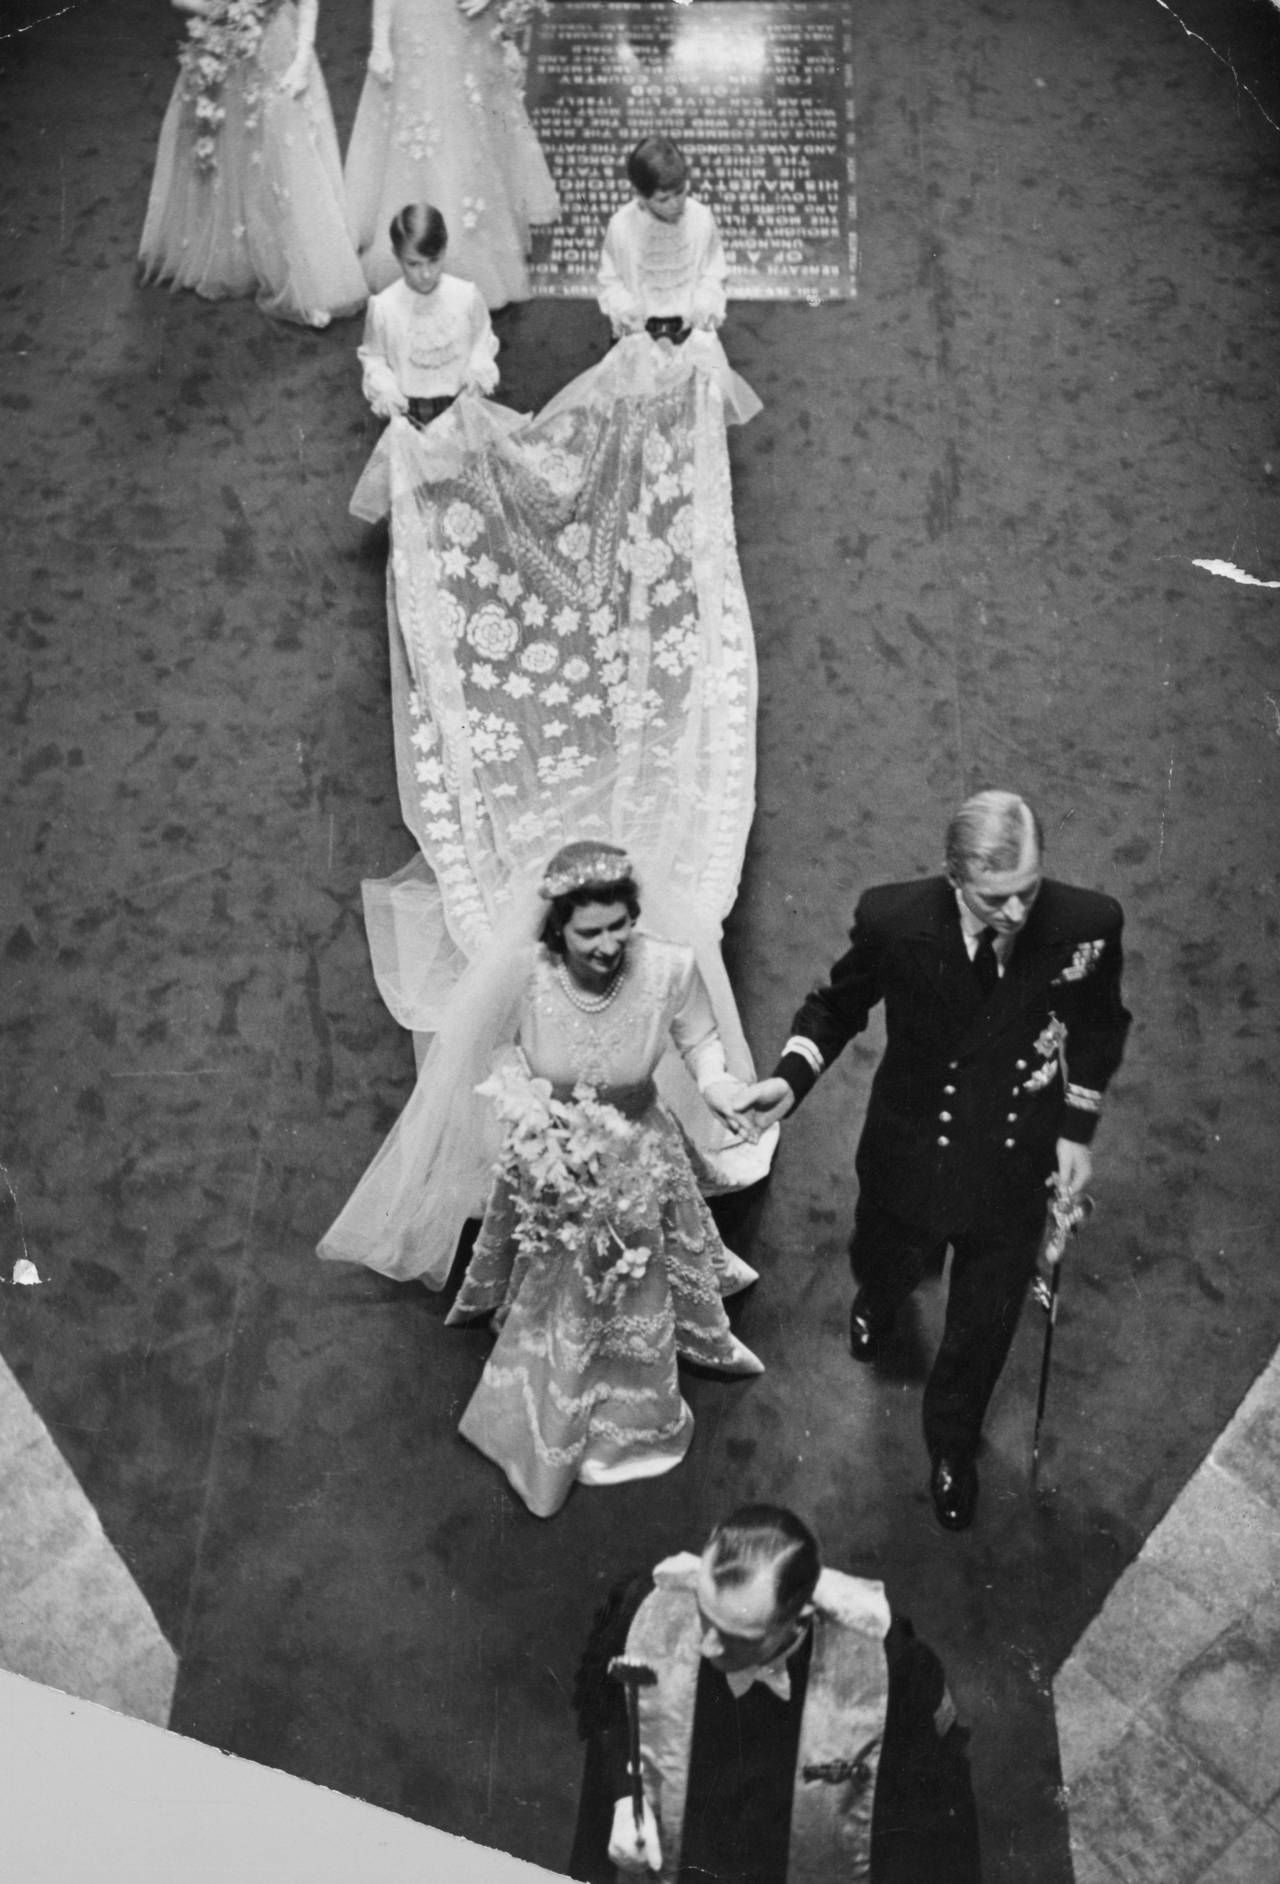 Queen Elizabeth Hochzeit The Future Queen Elizabeth Ii With Prince Philip At Their Wedding